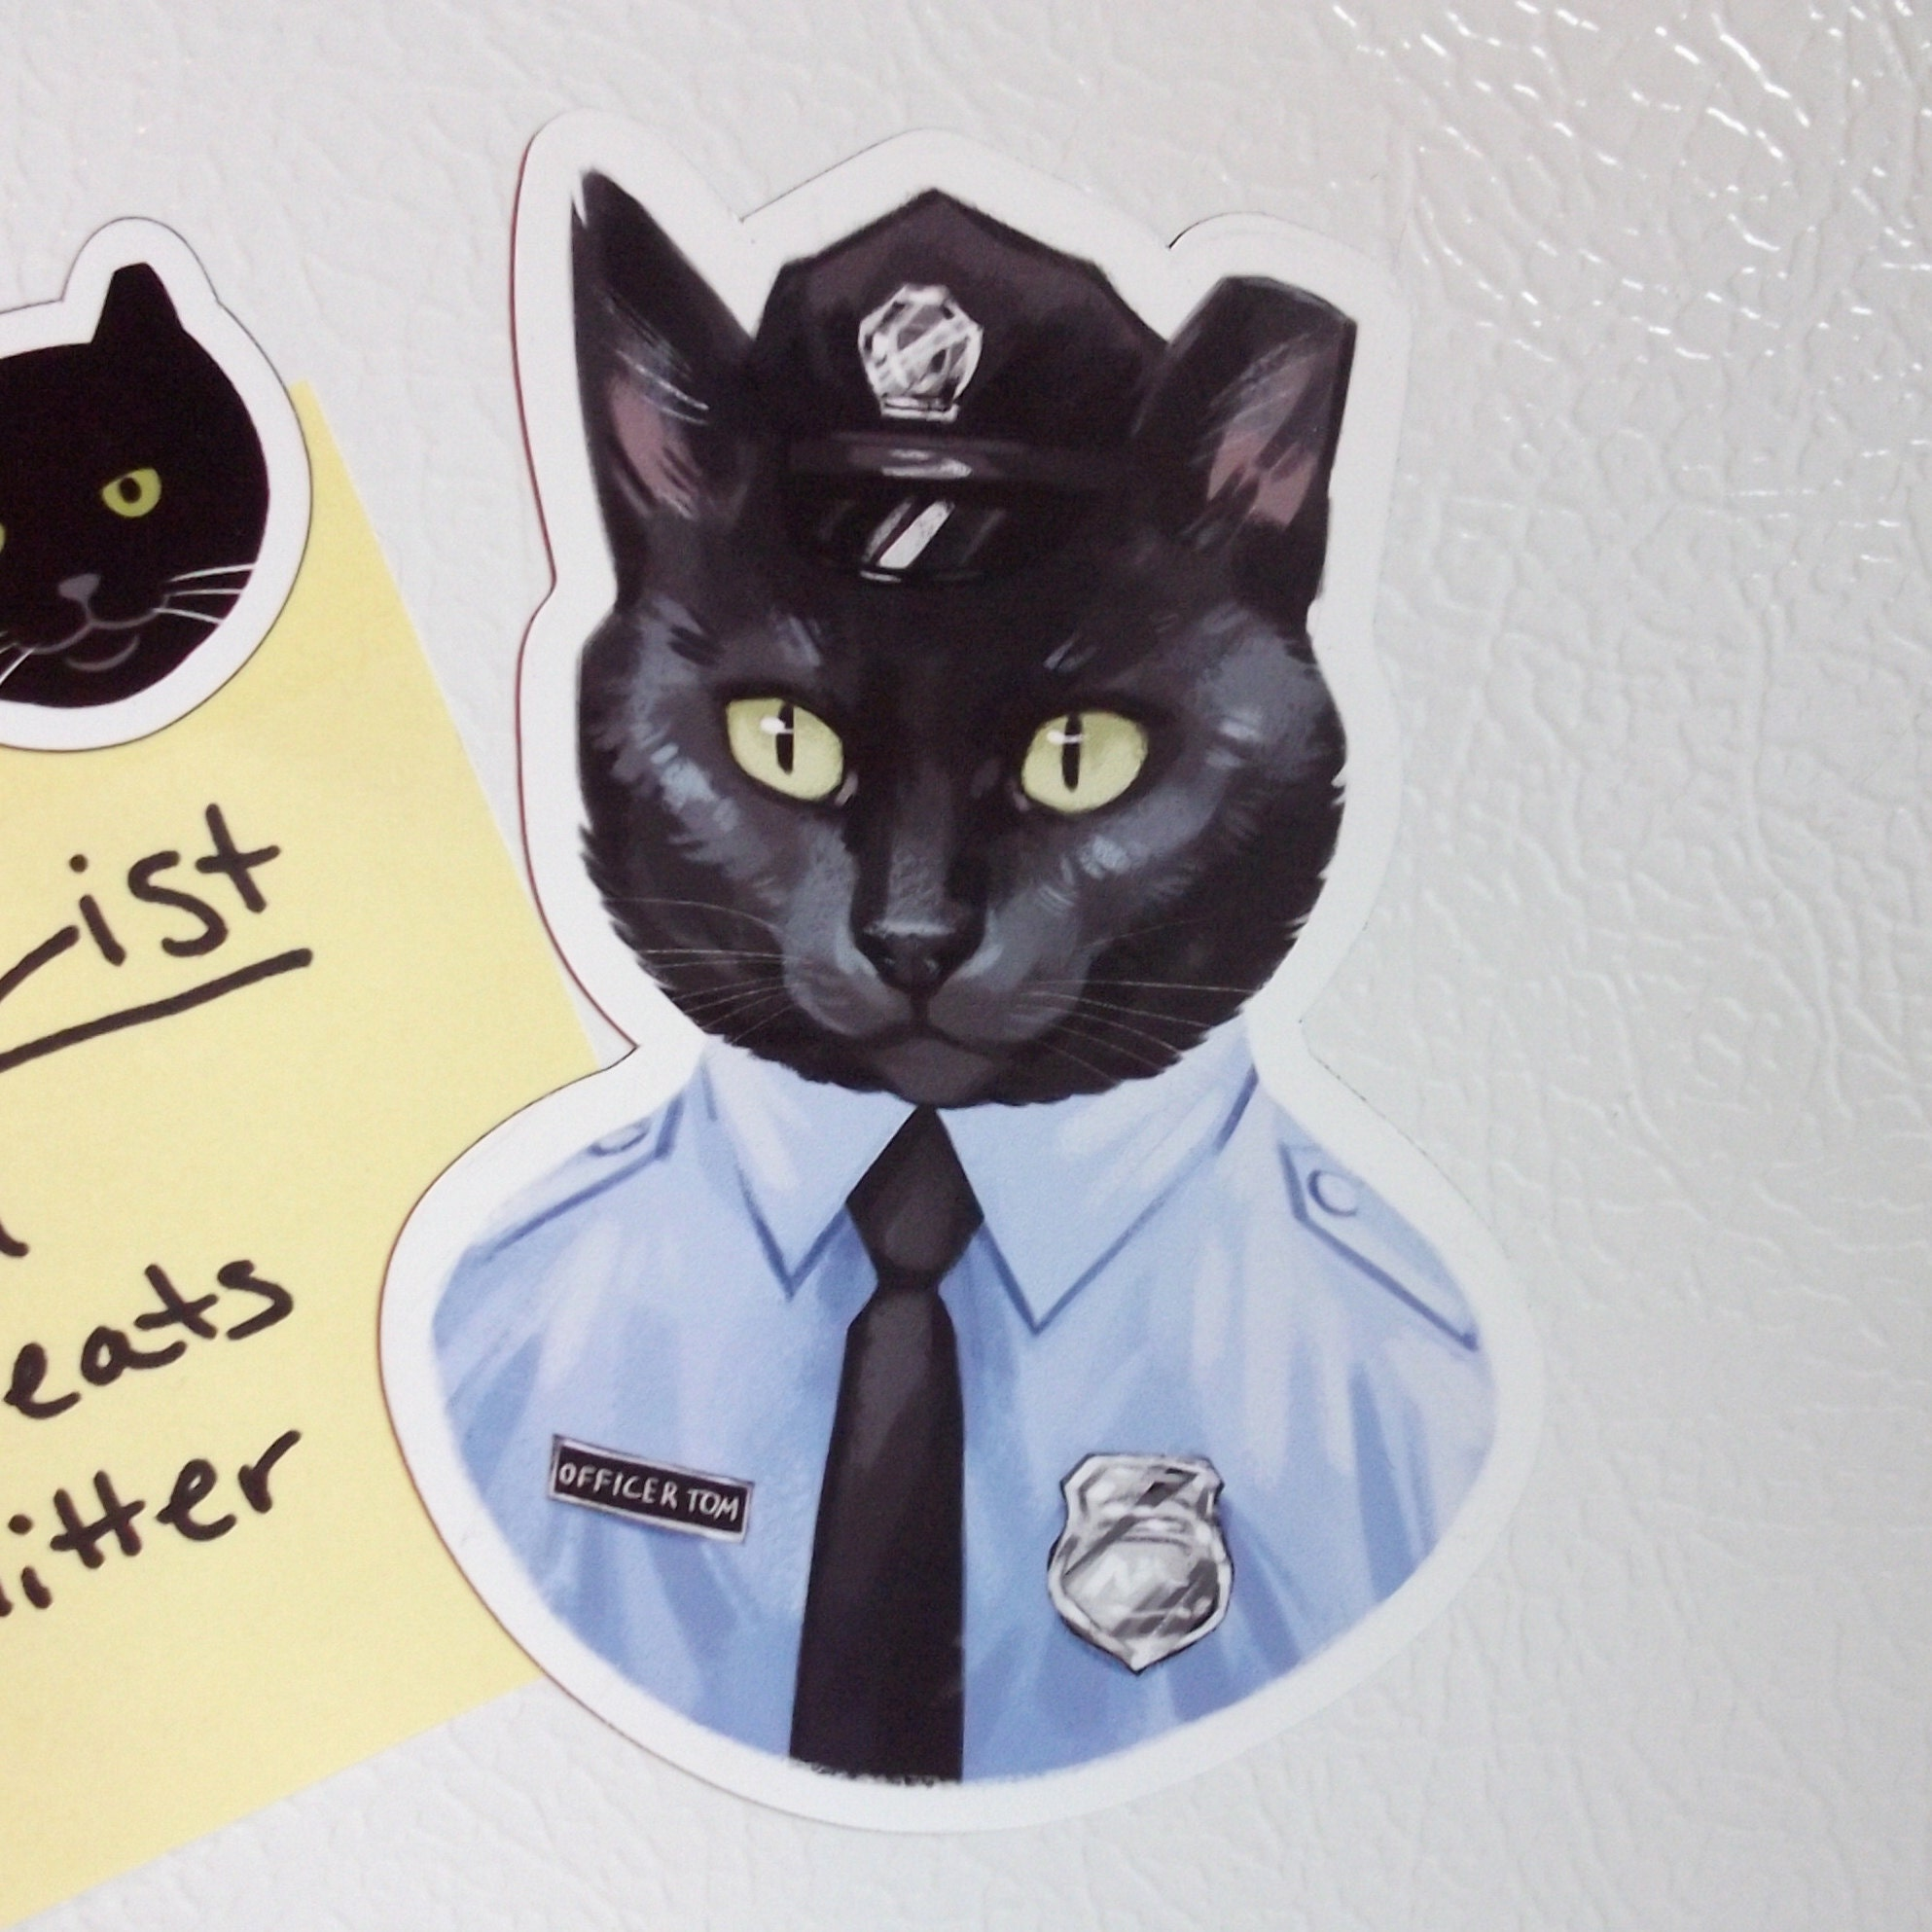 Officer Tom magnets